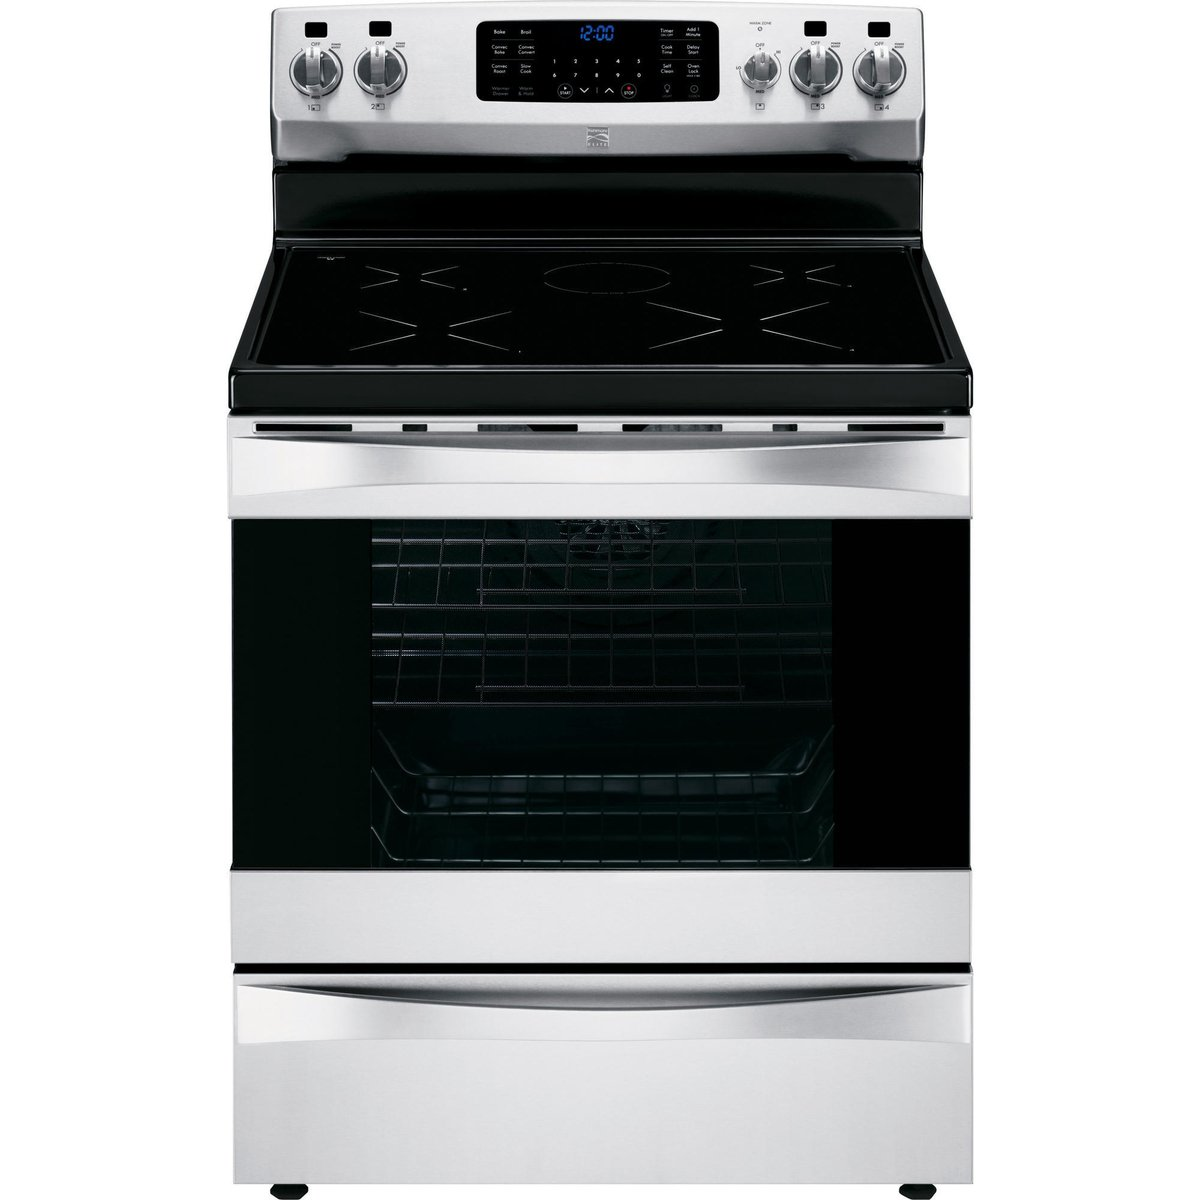 Amazon.com: Kenmore Elite 95073 6.1 cu. ft. Self -Clean Freestanding  Induction Range w/True Convection in Stainless Steel, includes delivery and  hookup: ...